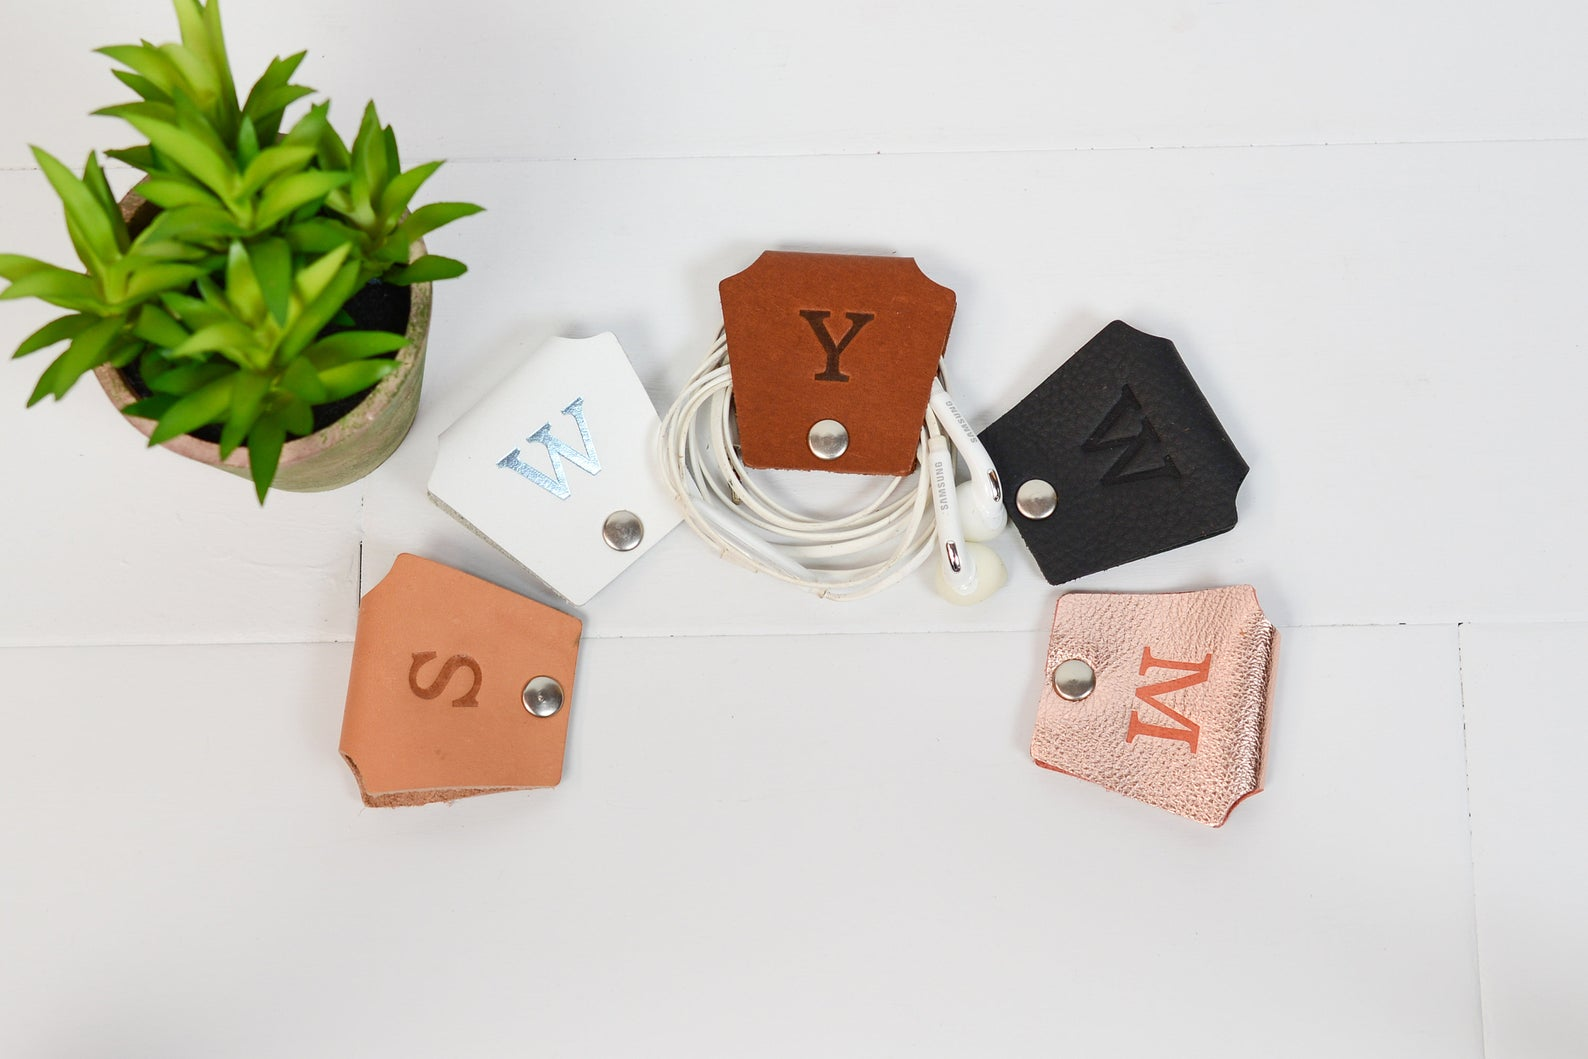 Set of 3 Personalized Earbud Holders By Felix Street Leather